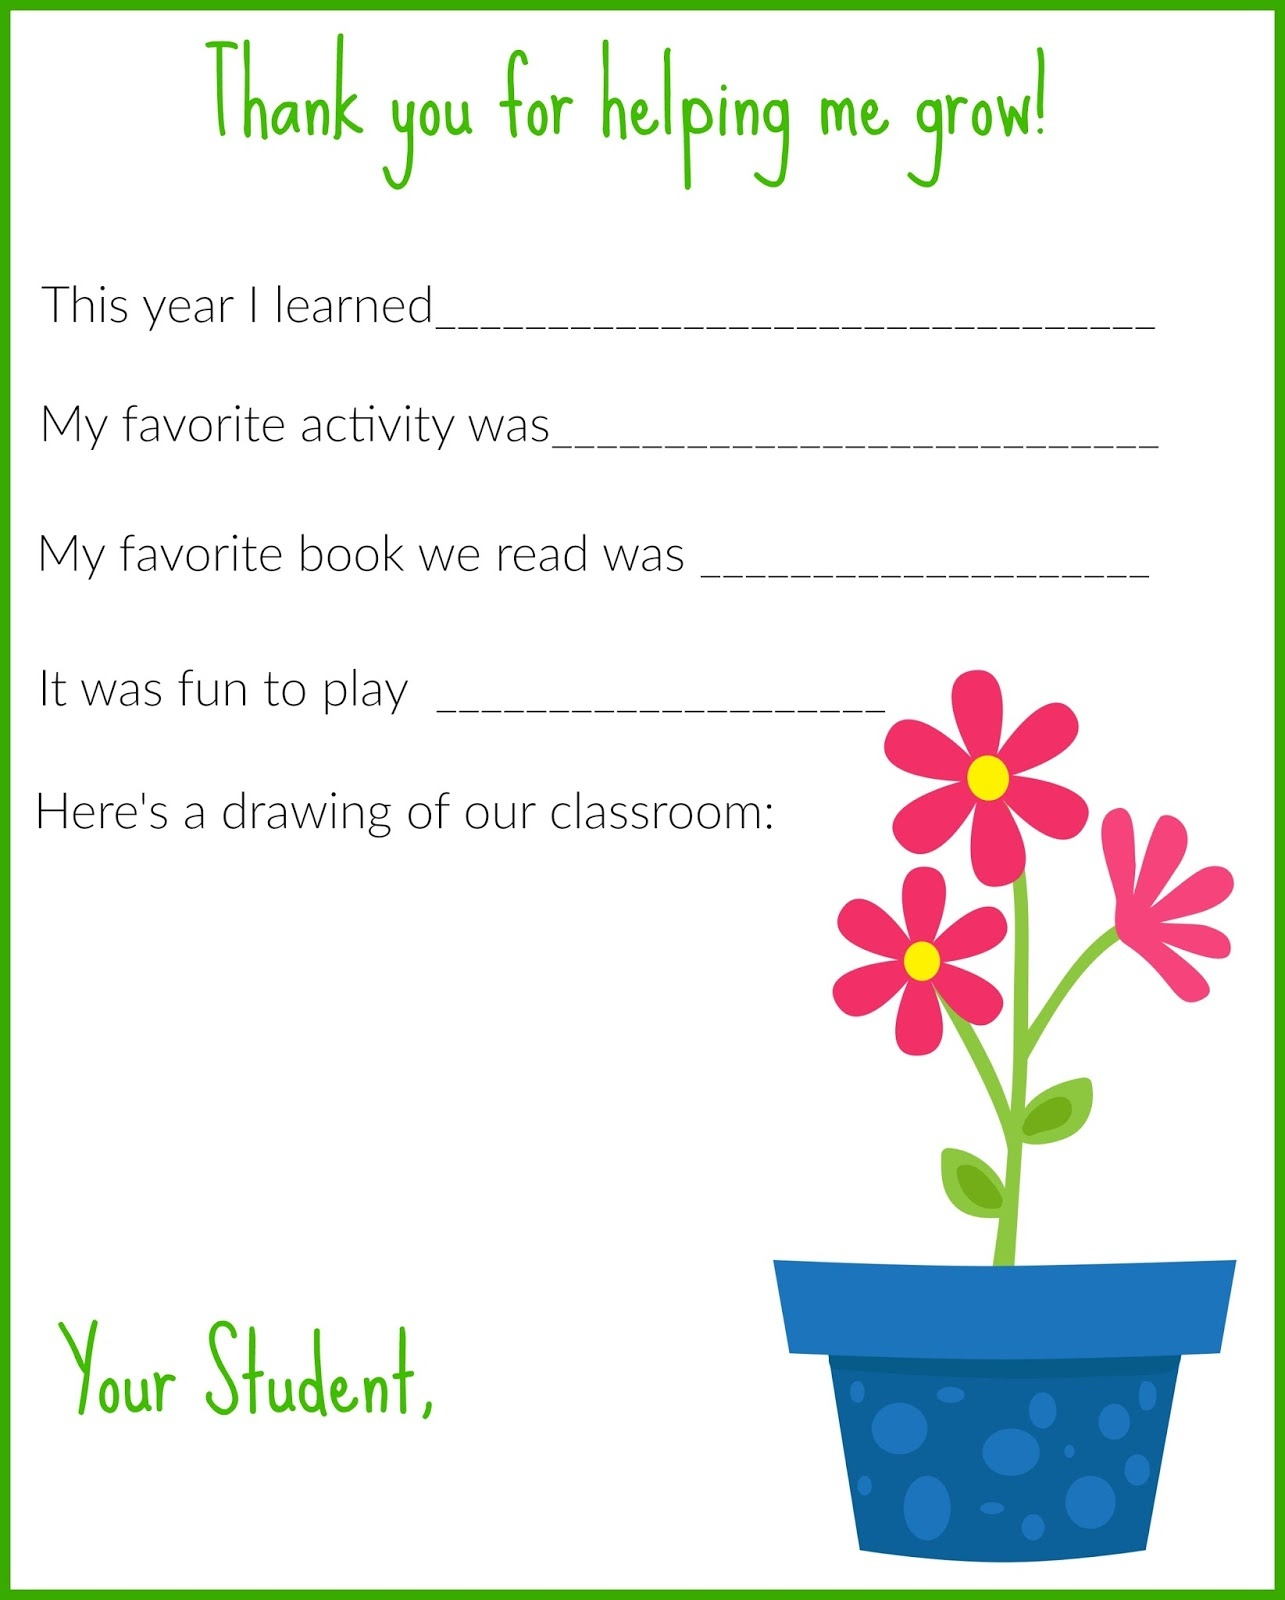 A Thank You Letter For Teachers {Free Printable} - The Chirping Moms - Thank You Teacher Printables Free